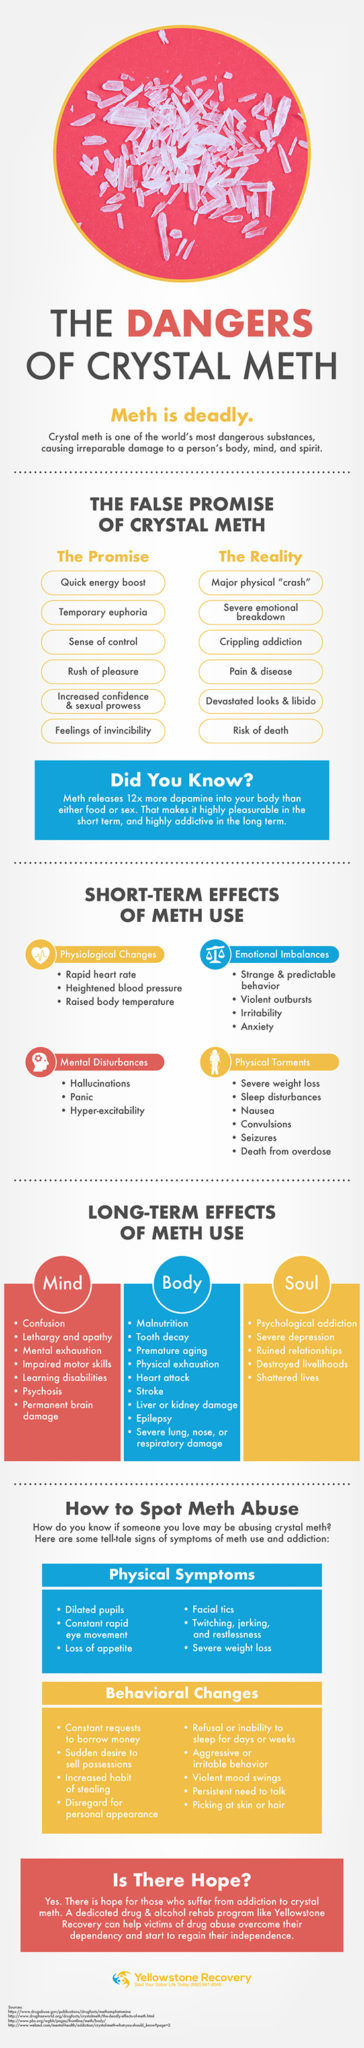 The Dangers of Crystal Meth Infographic